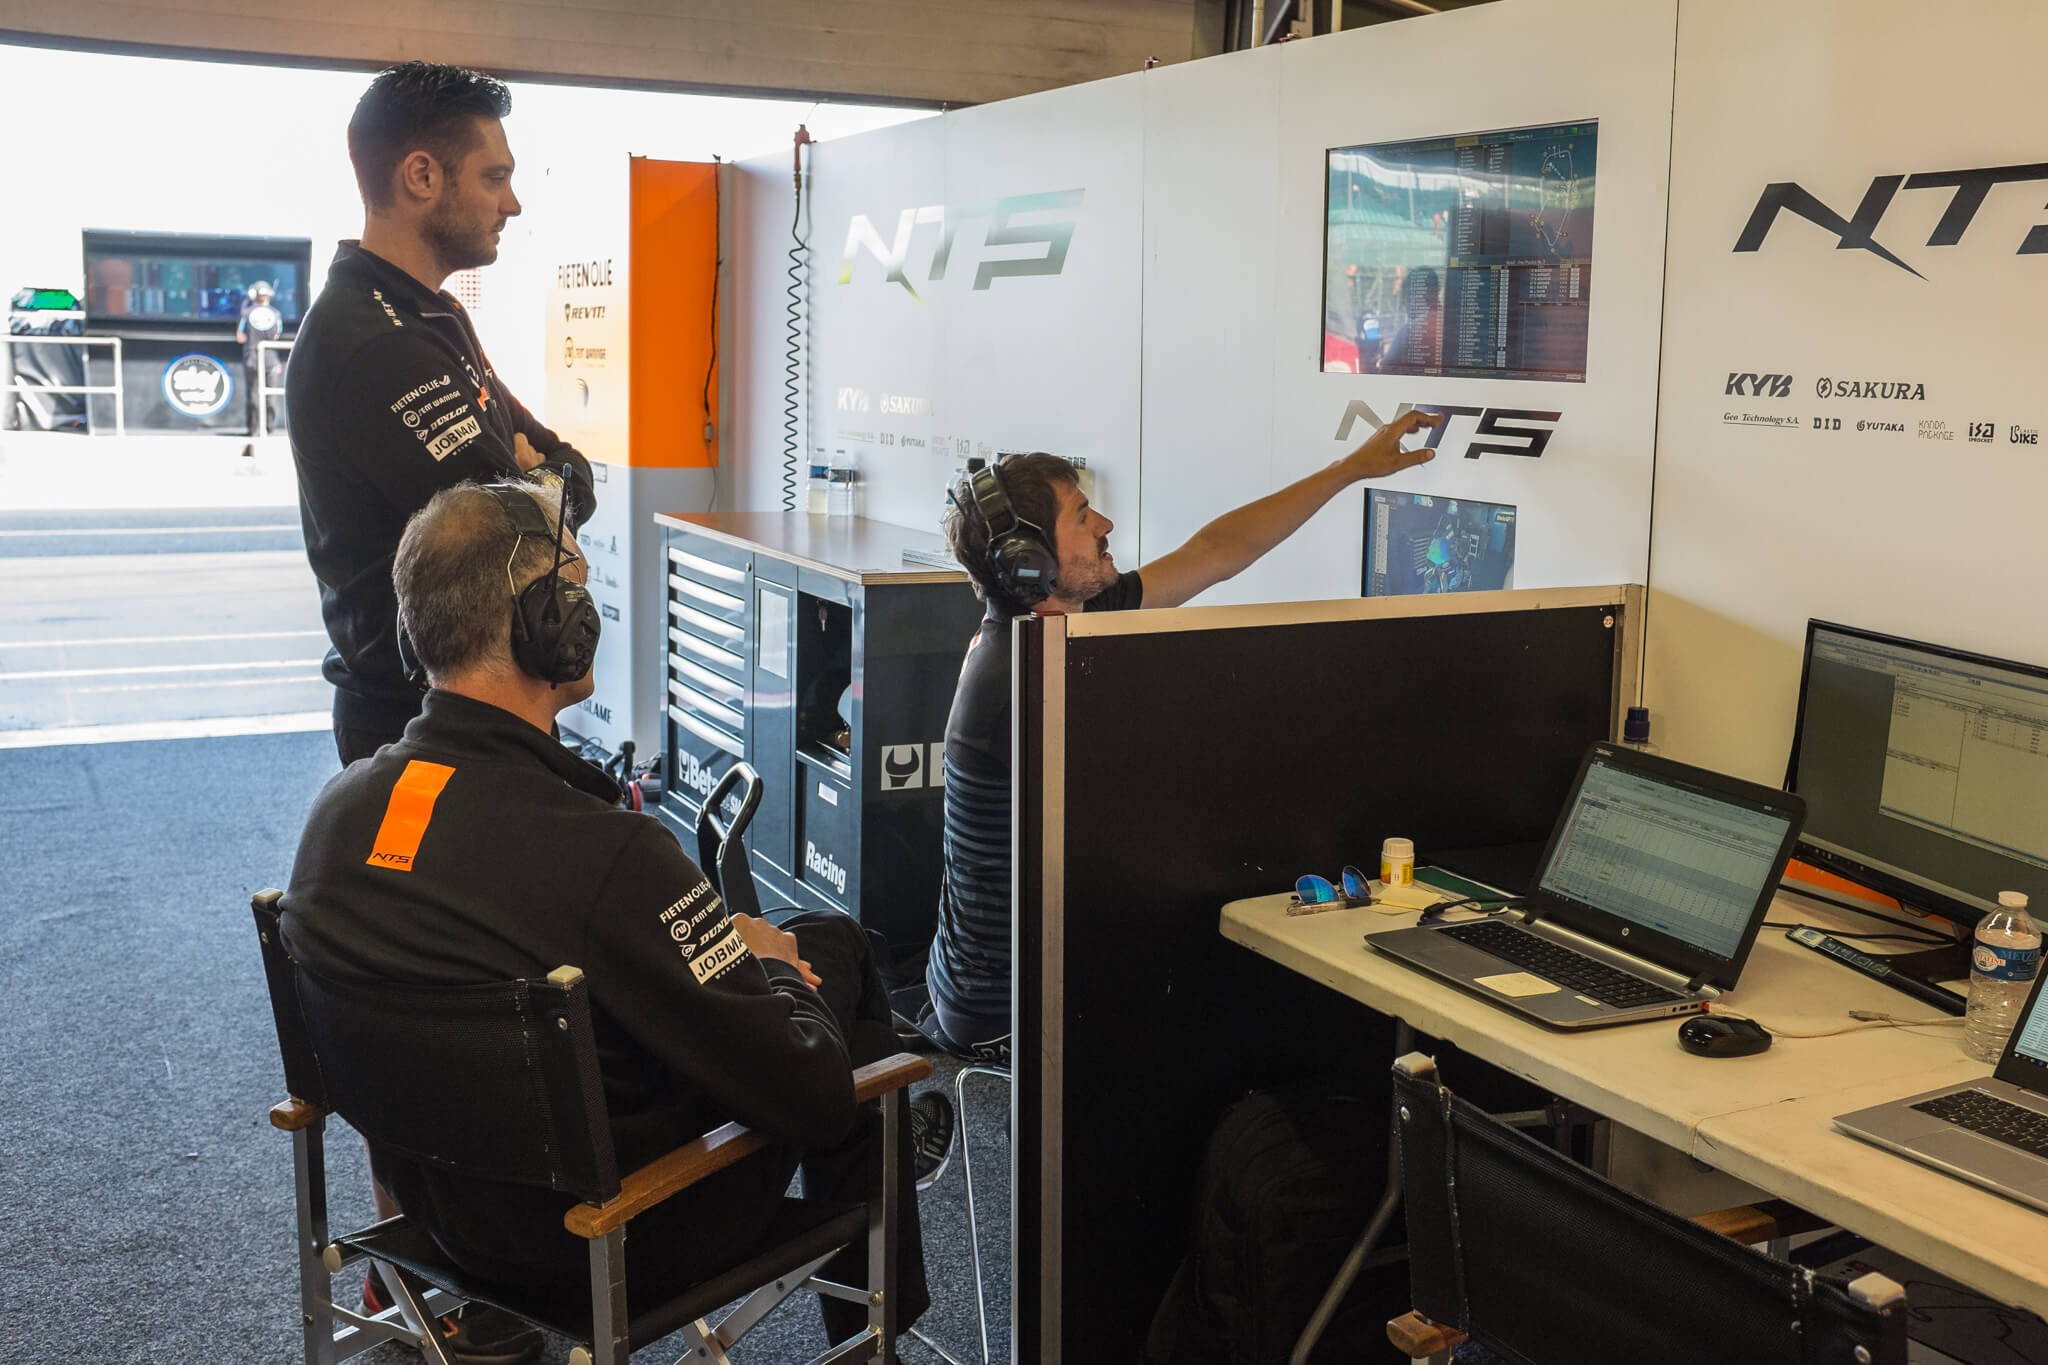 Analysing the data and lap time